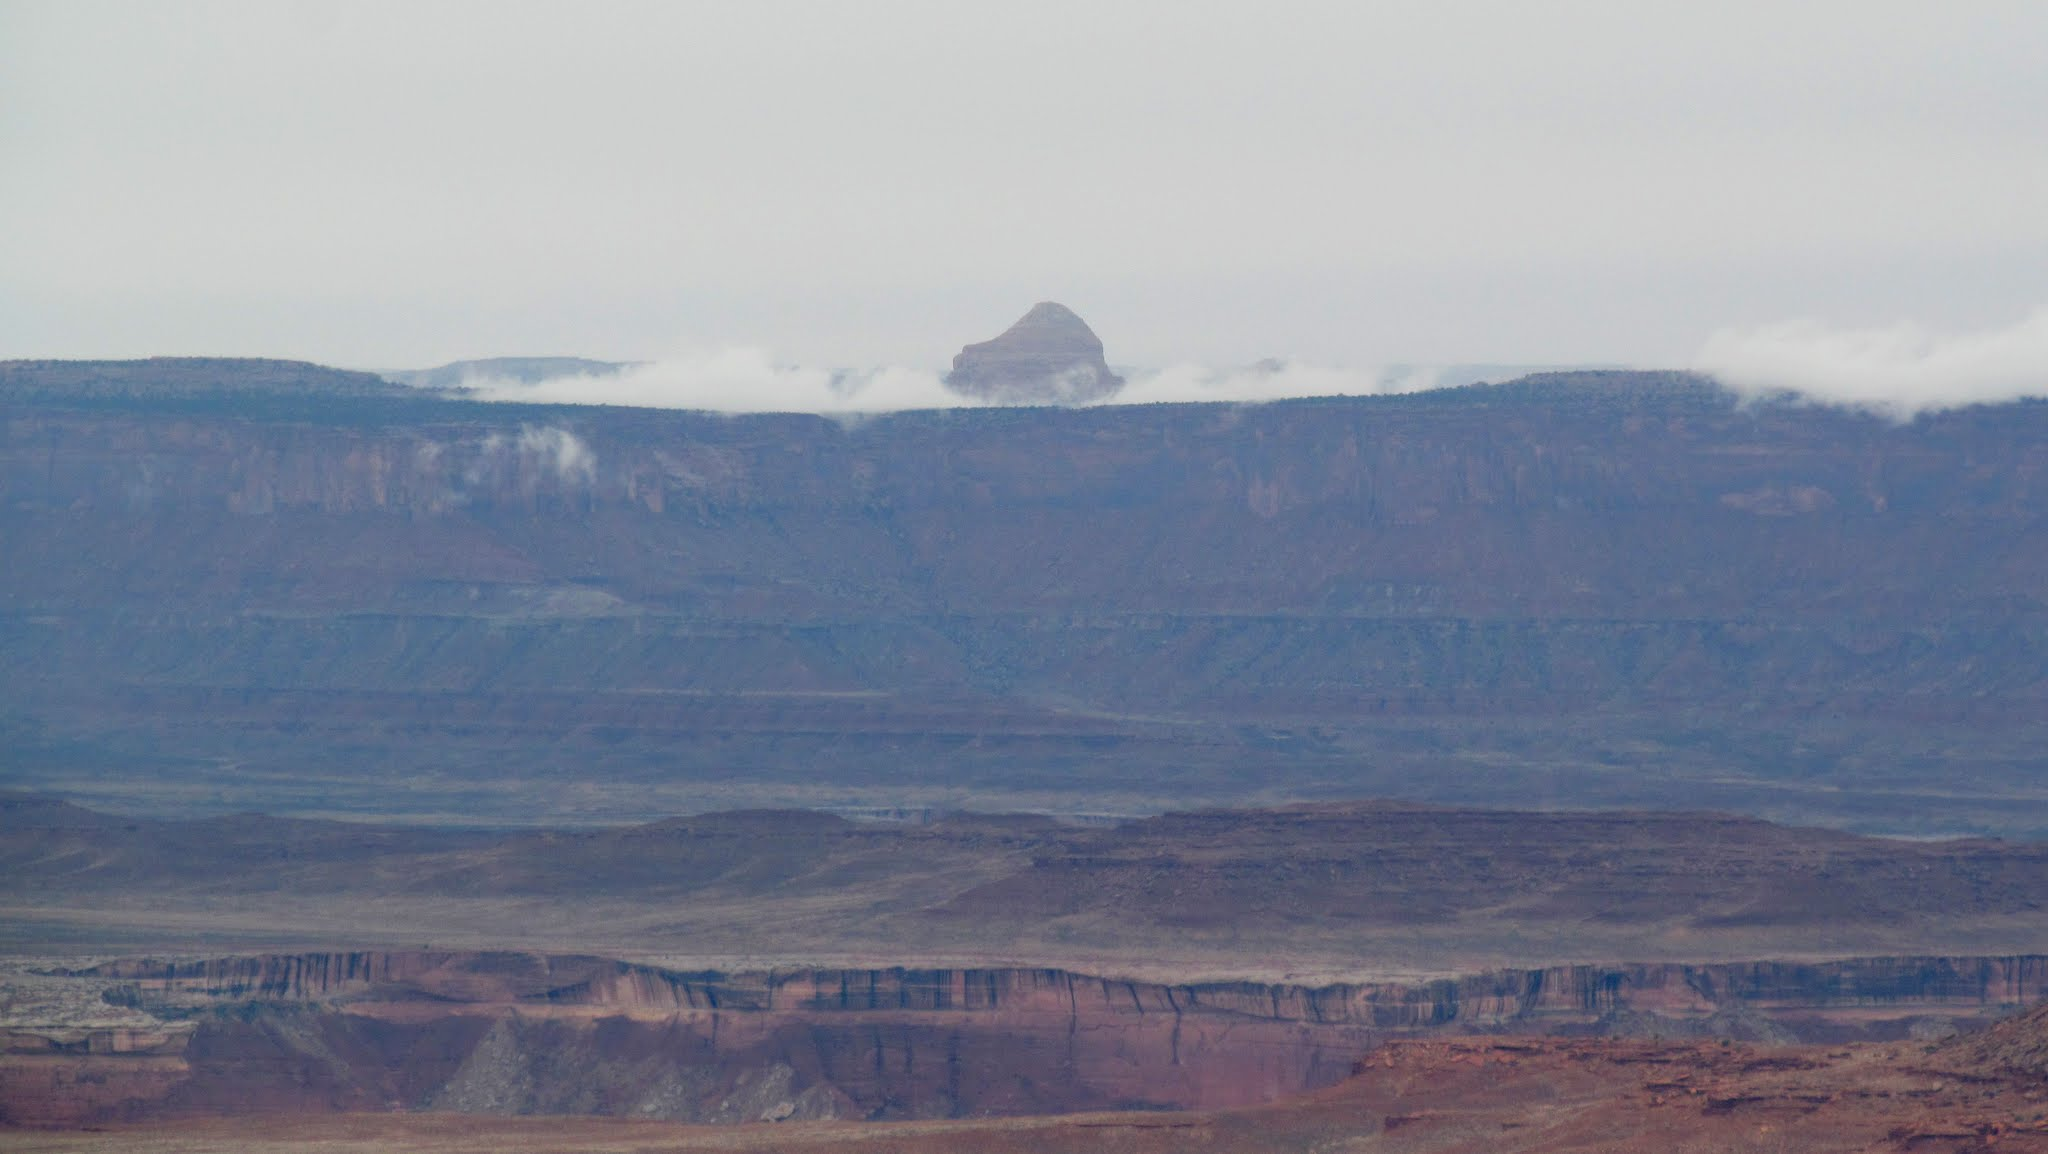 Photo: Cleopatra's Chair seen from the Orange Cliffs Overlook